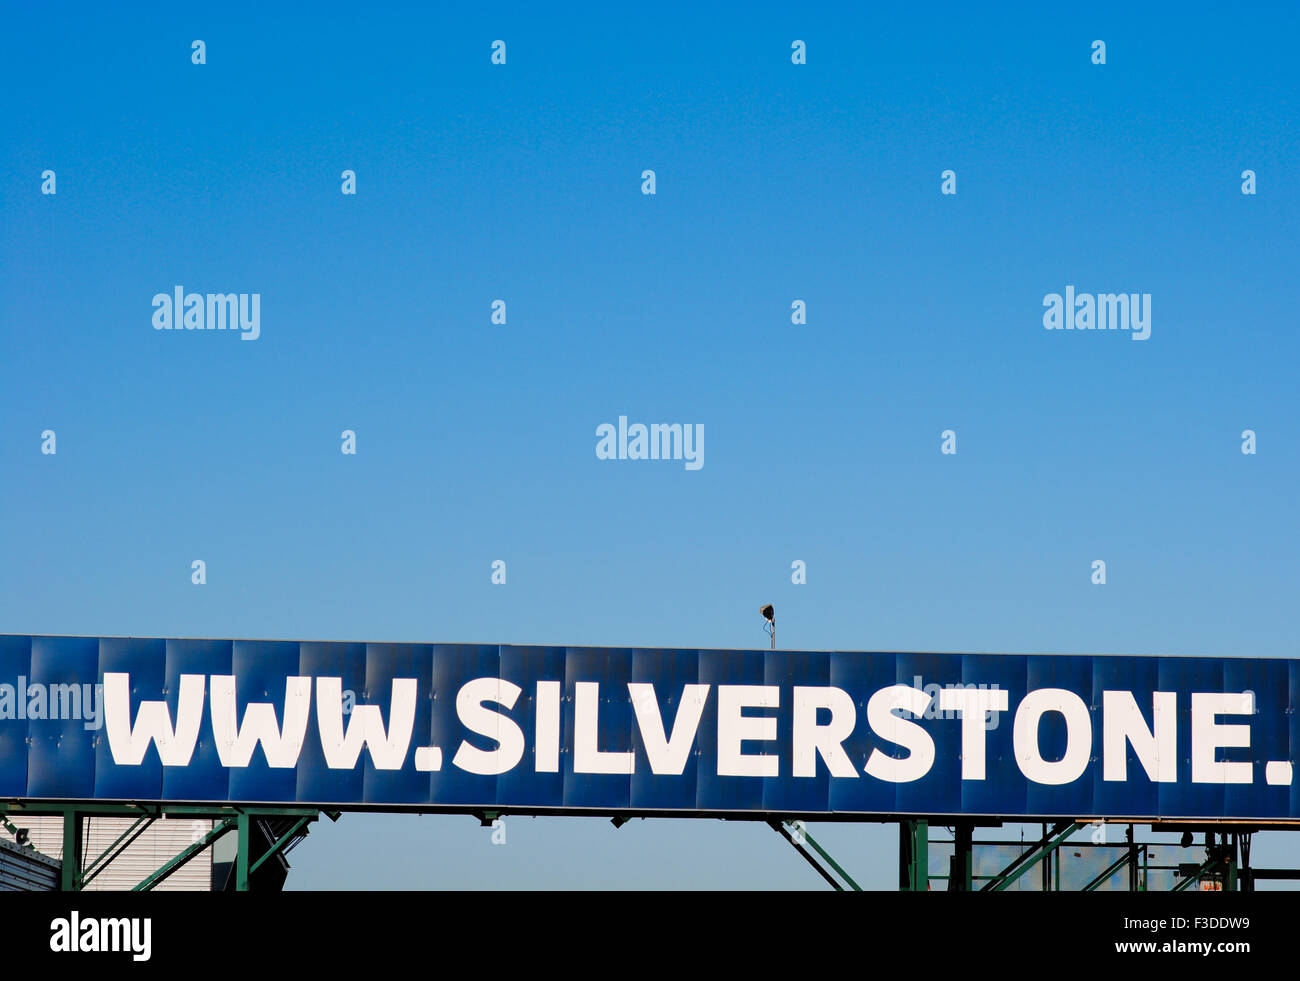 Silverstone Sign Stock Photos & Silverstone Sign Stock Images - Alamy